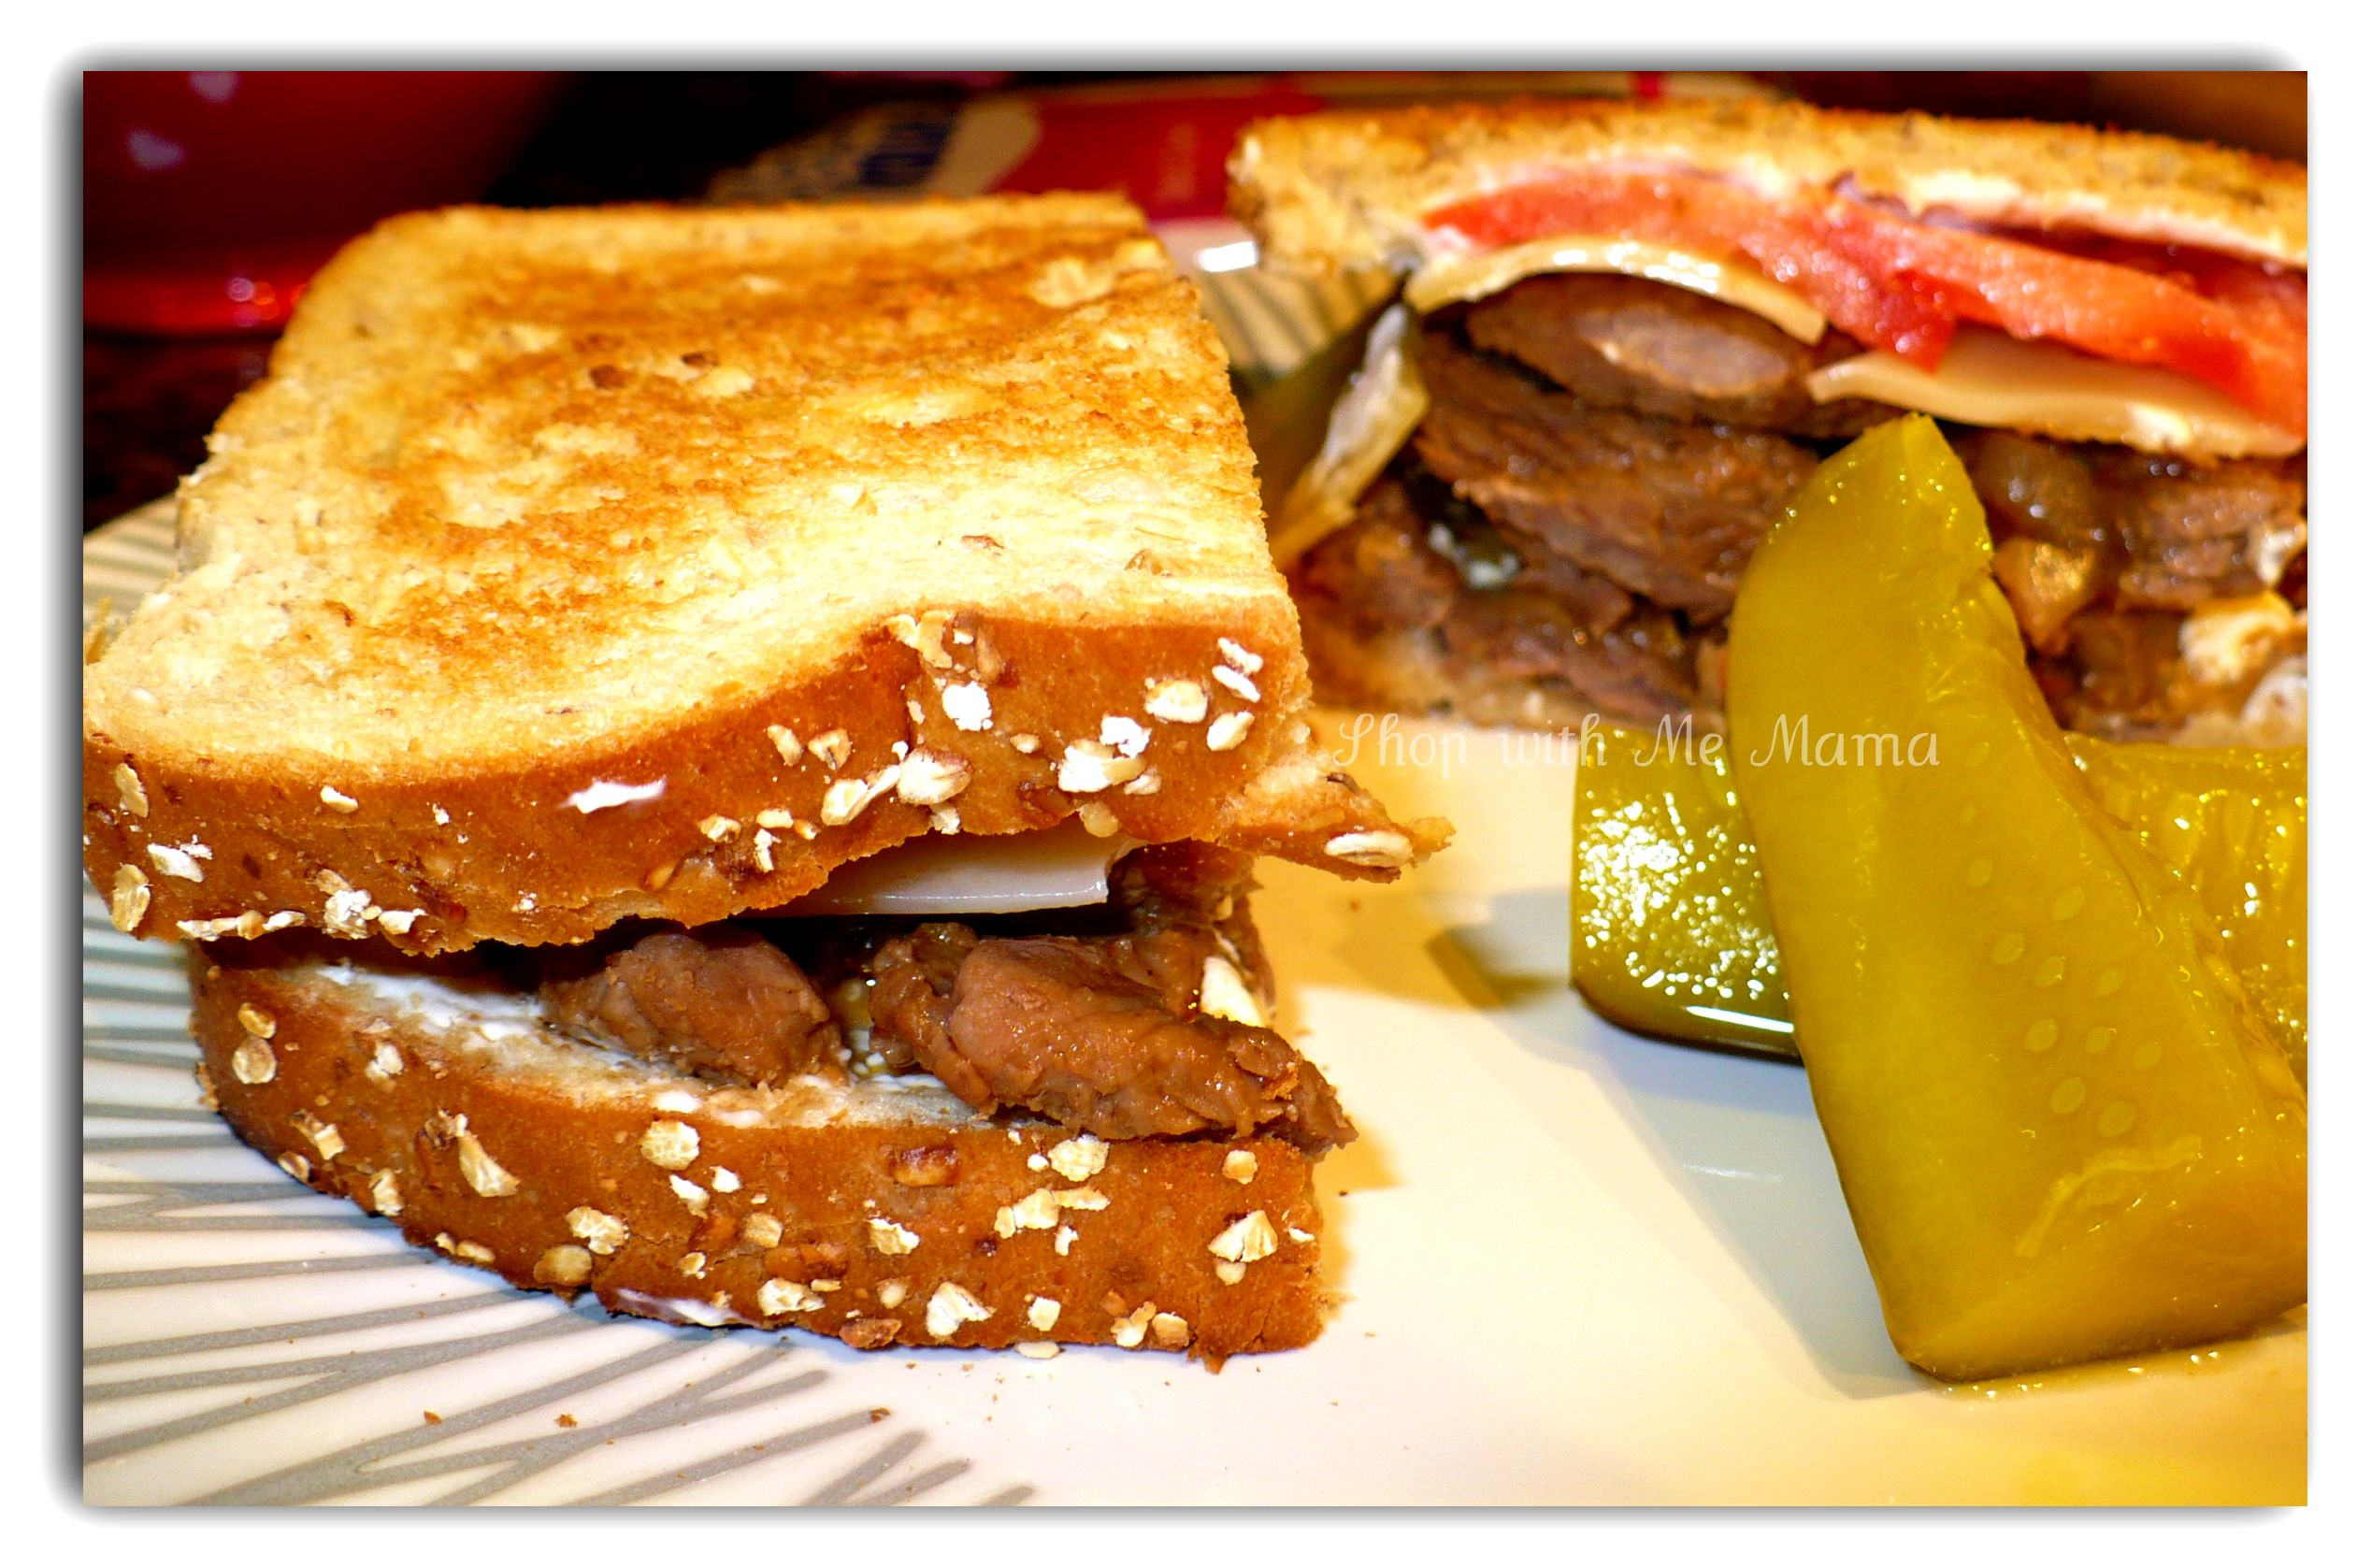 Sweet & Spicy Steak with Onion, Mushrooms & Swiss Cheese